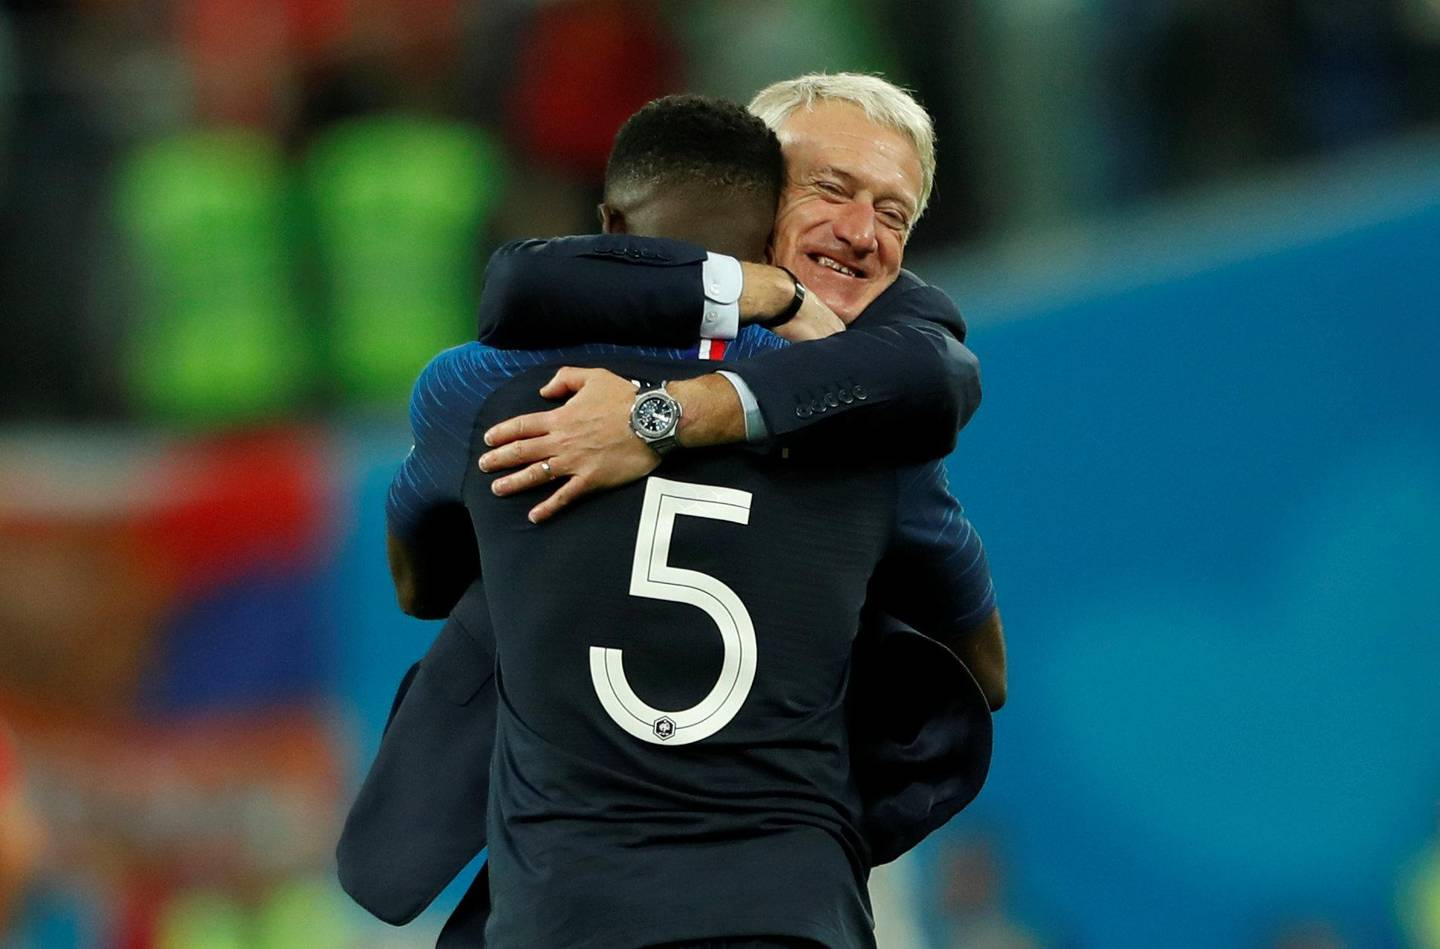 Soccer Football - World Cup - Semi Final - France v Belgium - Saint Petersburg Stadium, Saint Petersburg, Russia - July 10, 2018  France coach Didier Deschamps celebrates with Samuel Umtiti at the end of the match   REUTERS/Lee Smith